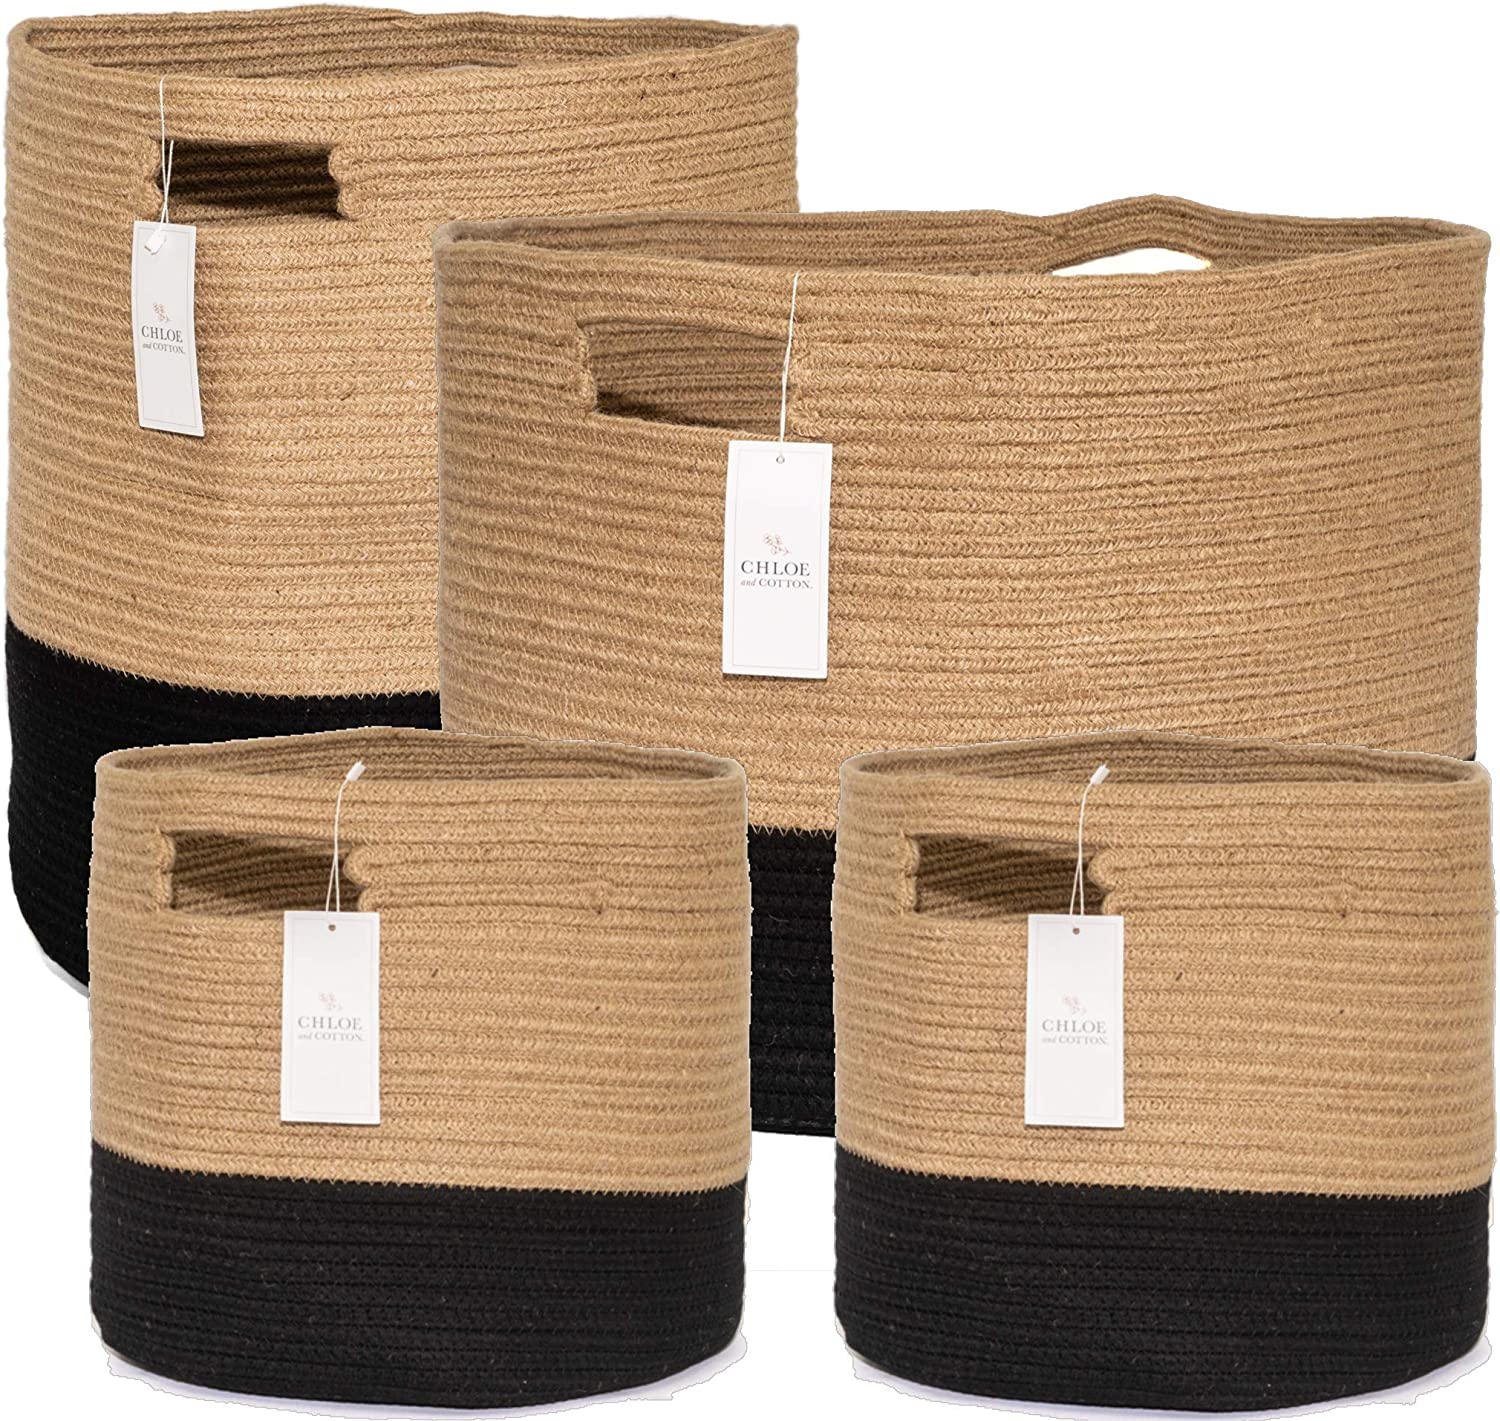 Chloe and Cotton Woven Coiled Rope Storage Baskets XXXL 15 x 21 inch; XL 19 x 16 and Set of 2 Cubby Baskets Jute Black Handles | Decorative Laundry Clothes Hamper, Blanket, Towel, Cute Organizer Bin